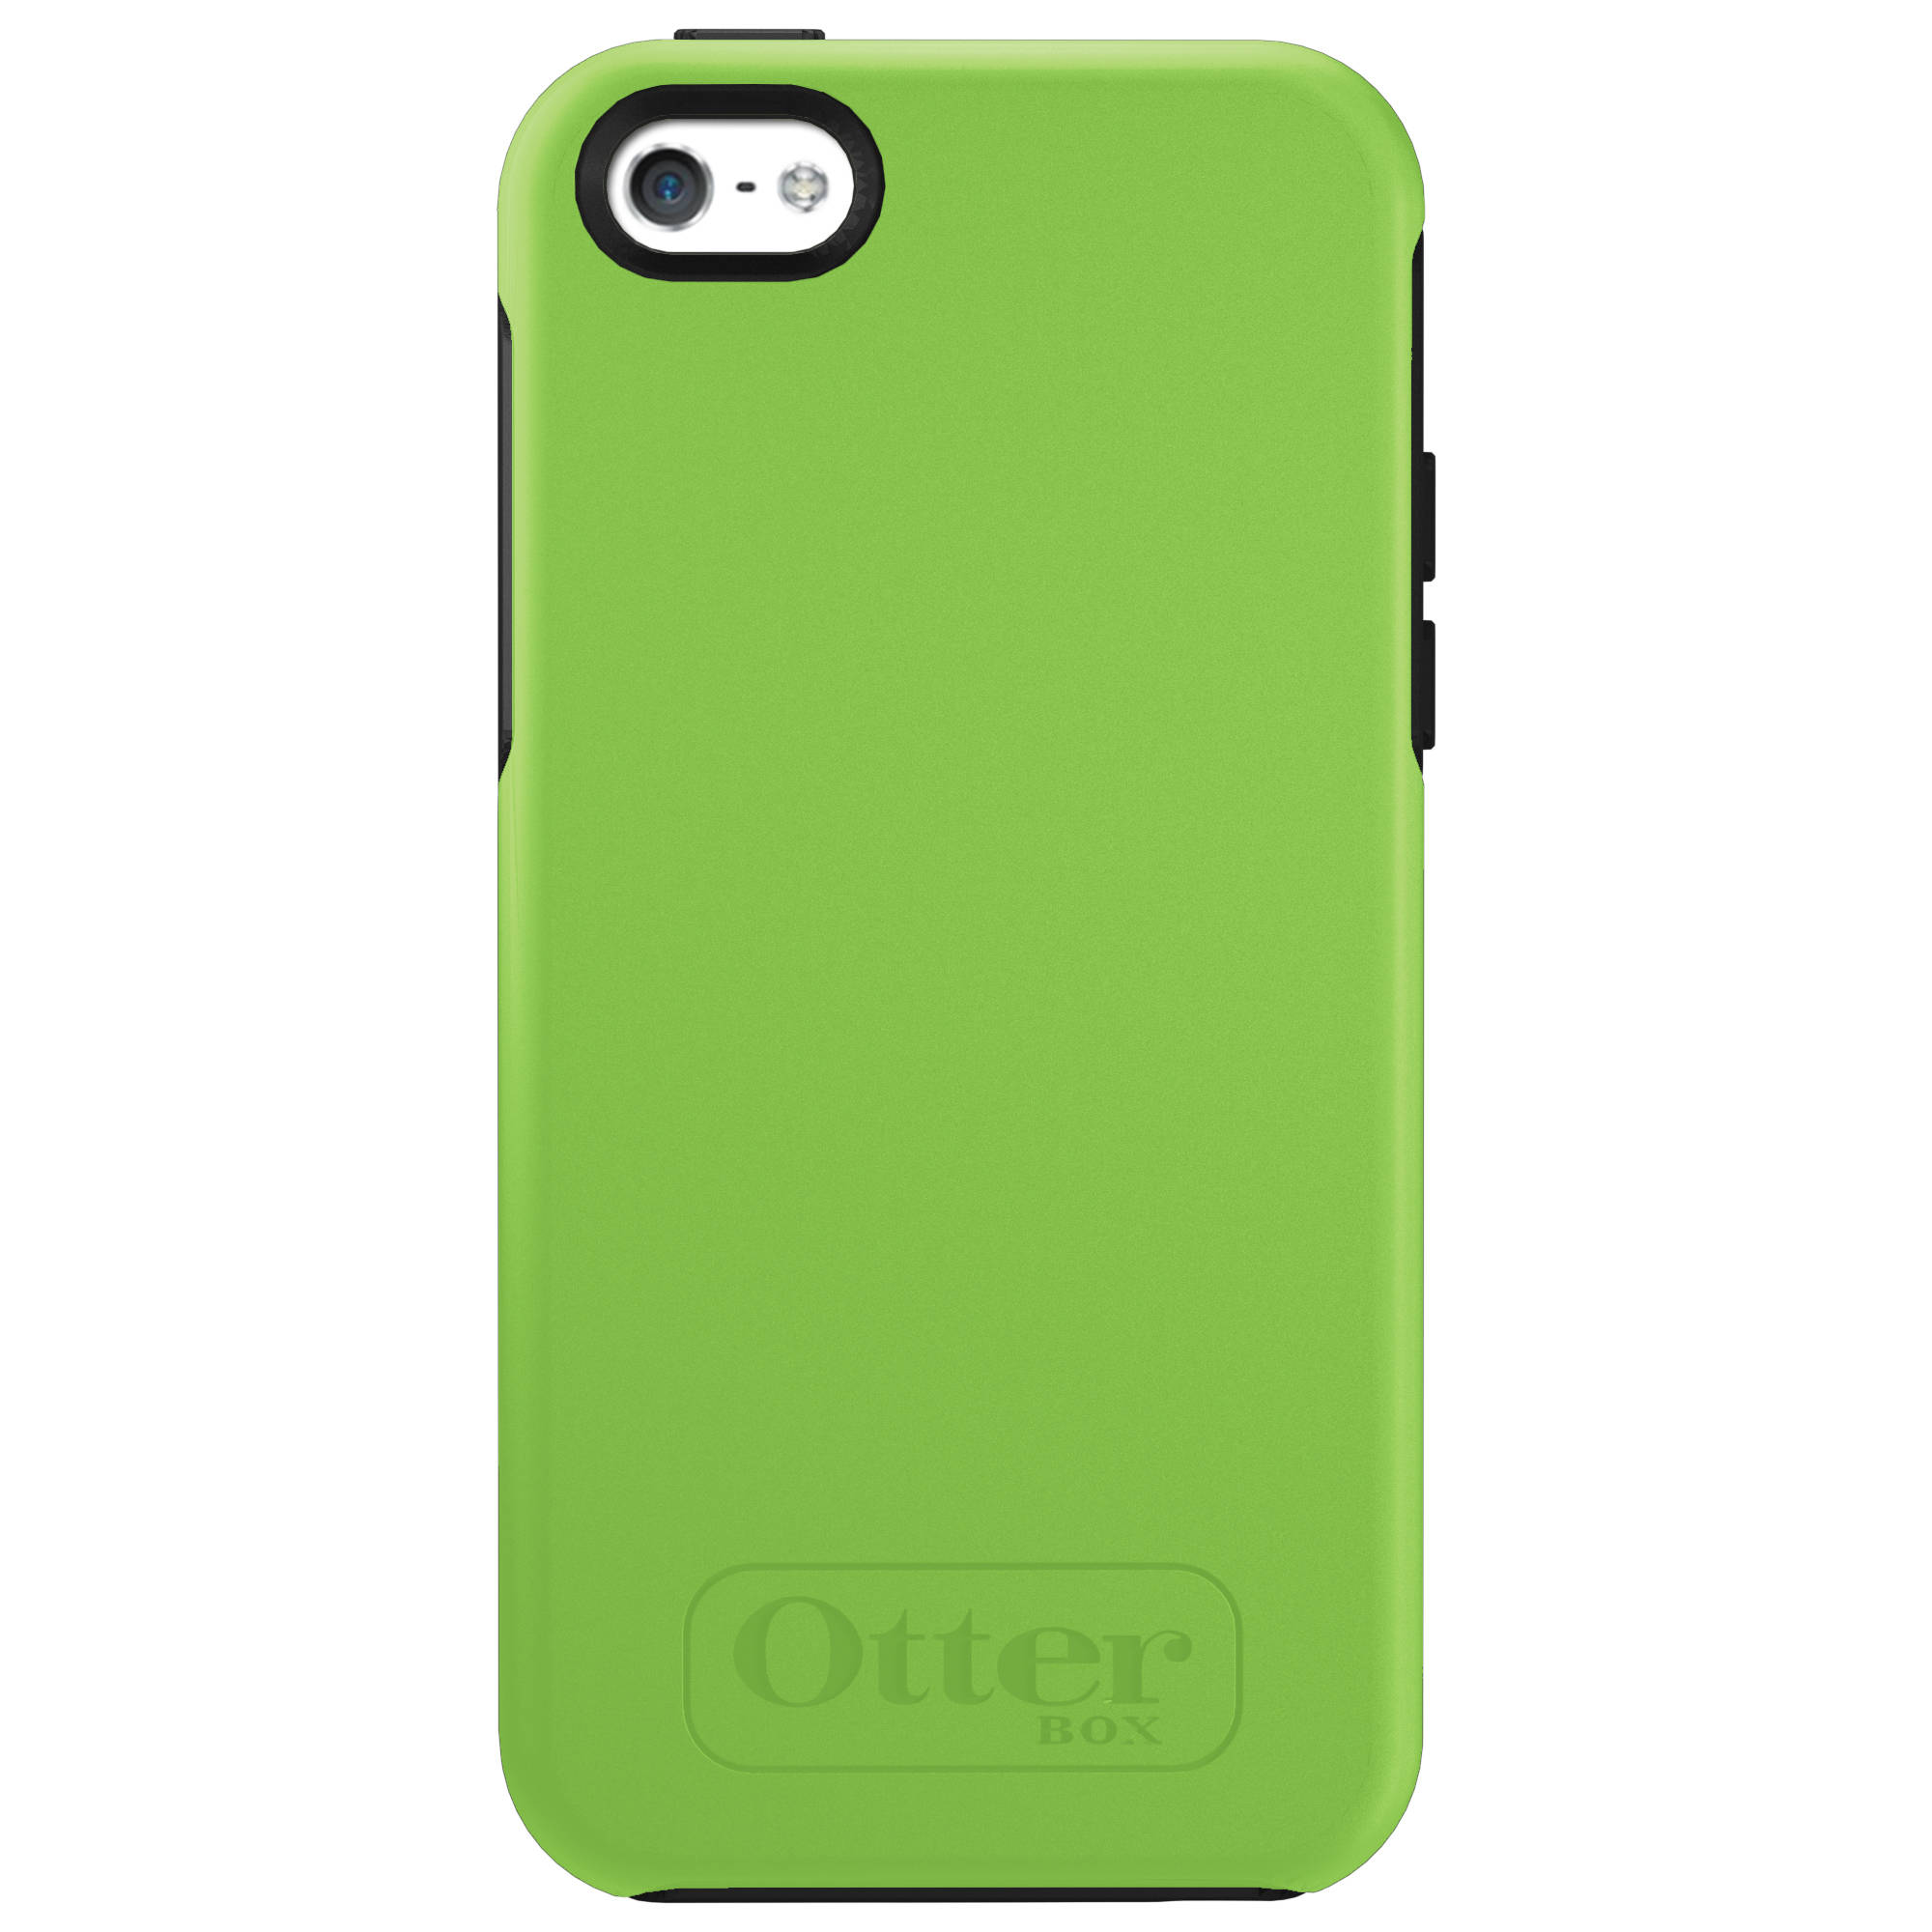 otterboxes for iphone 5c otter box symmetry series for iphone 5c green 77 37114 15825